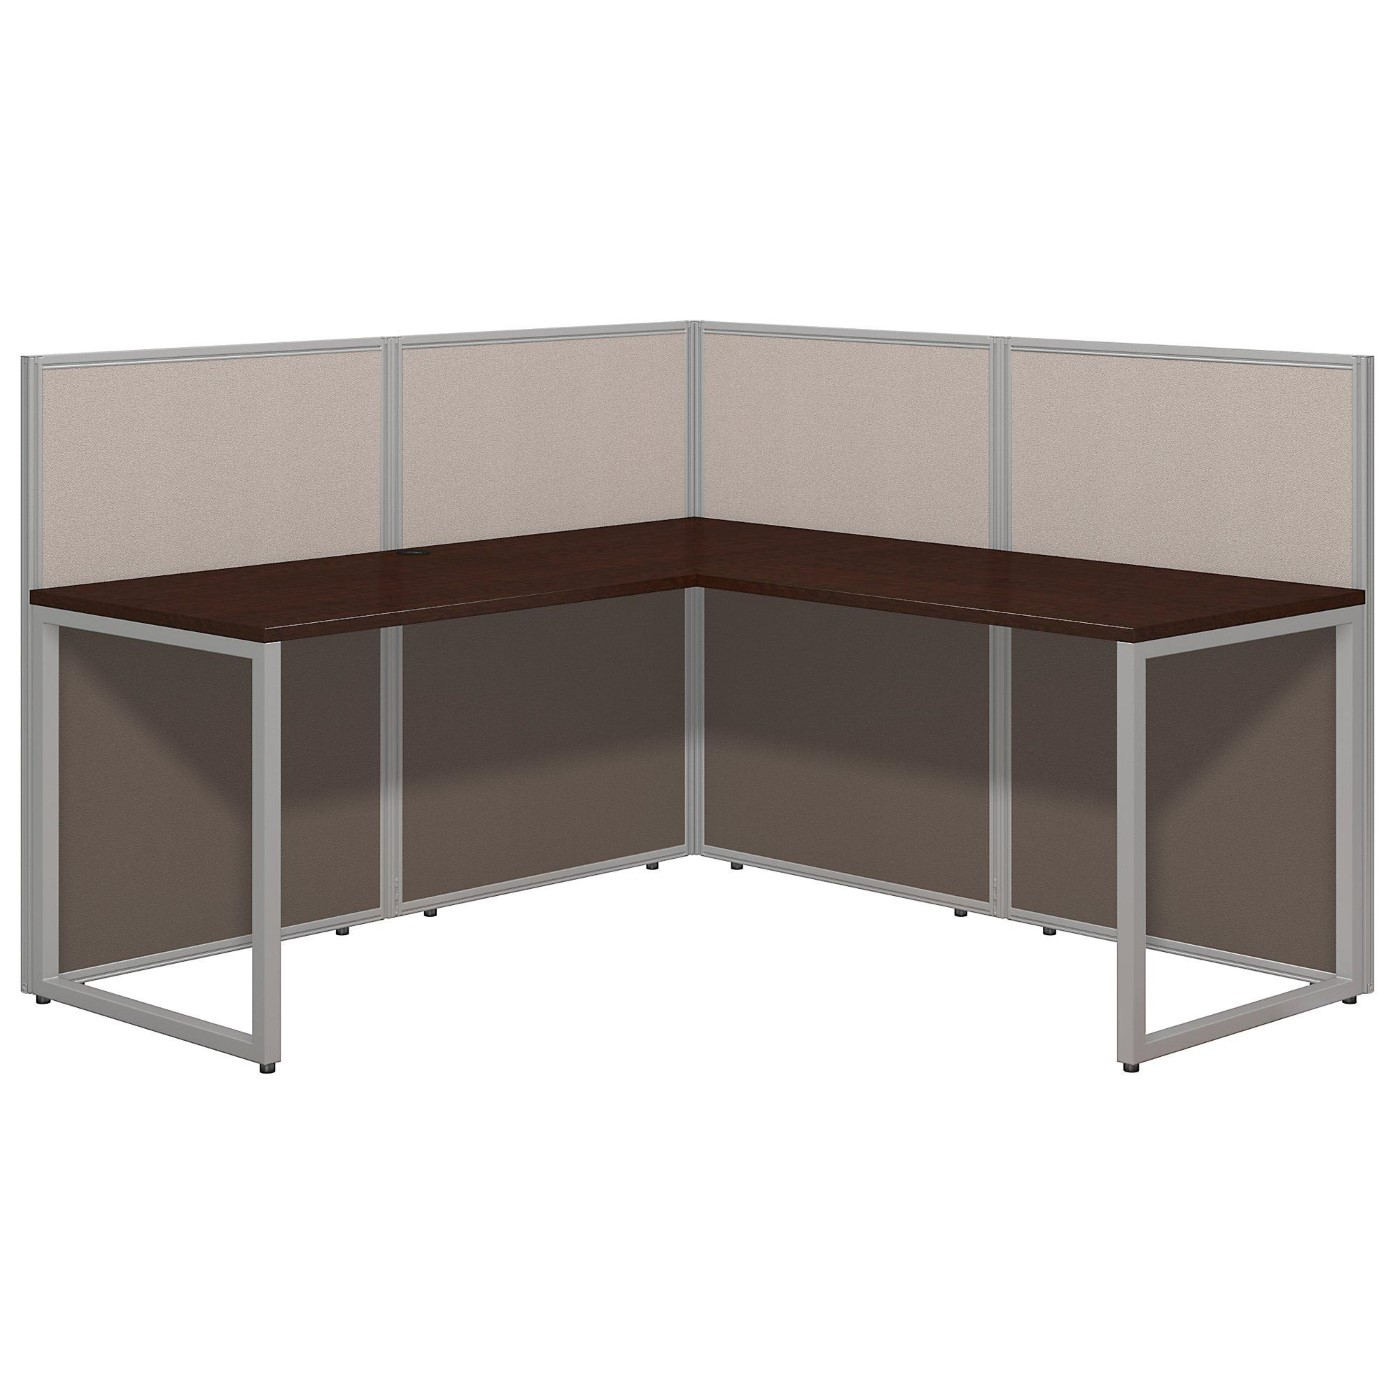 BUSH BUSINESS FURNITURE EASY OFFICE 60W L SHAPED DESK OPEN OFFICE. FREE SHIPPING.  SALE DEDUCT 10% MORE ENTER '10percent' IN COUPON CODE BOX WHILE CHECKING OUT. ENDS 5-31-20.